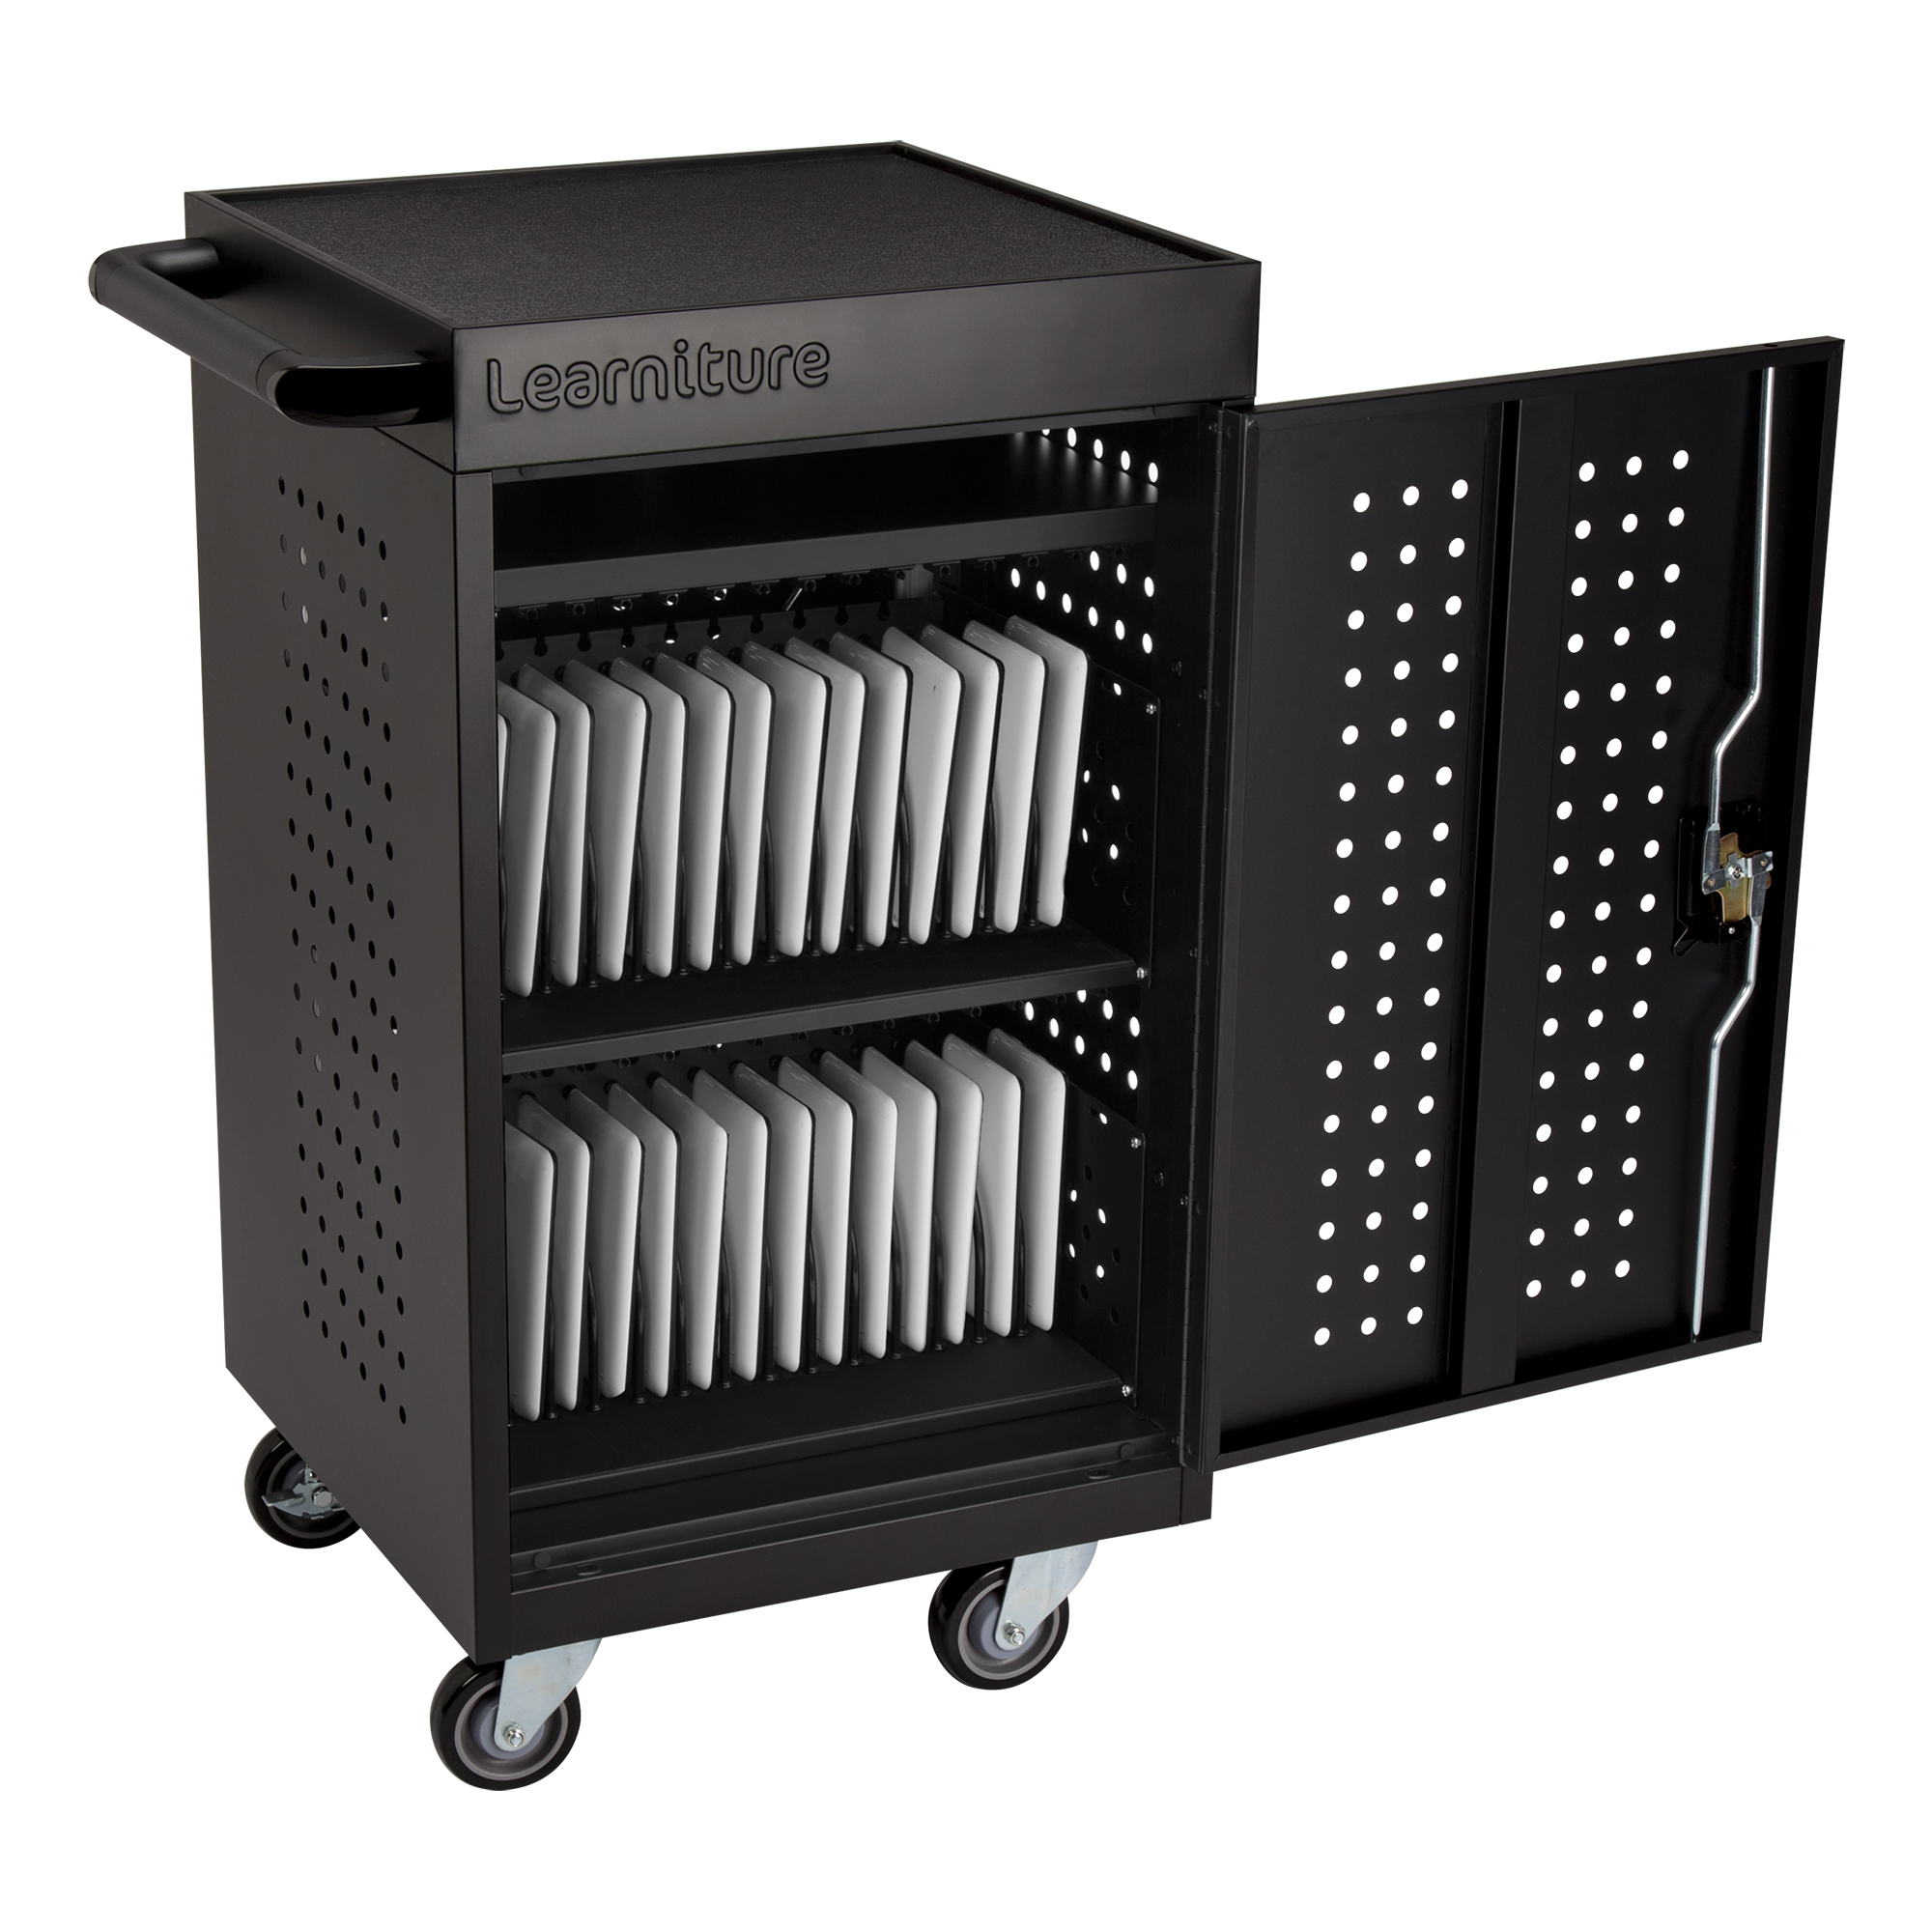 Learniture's 30-Bay Tablet Charging Cart